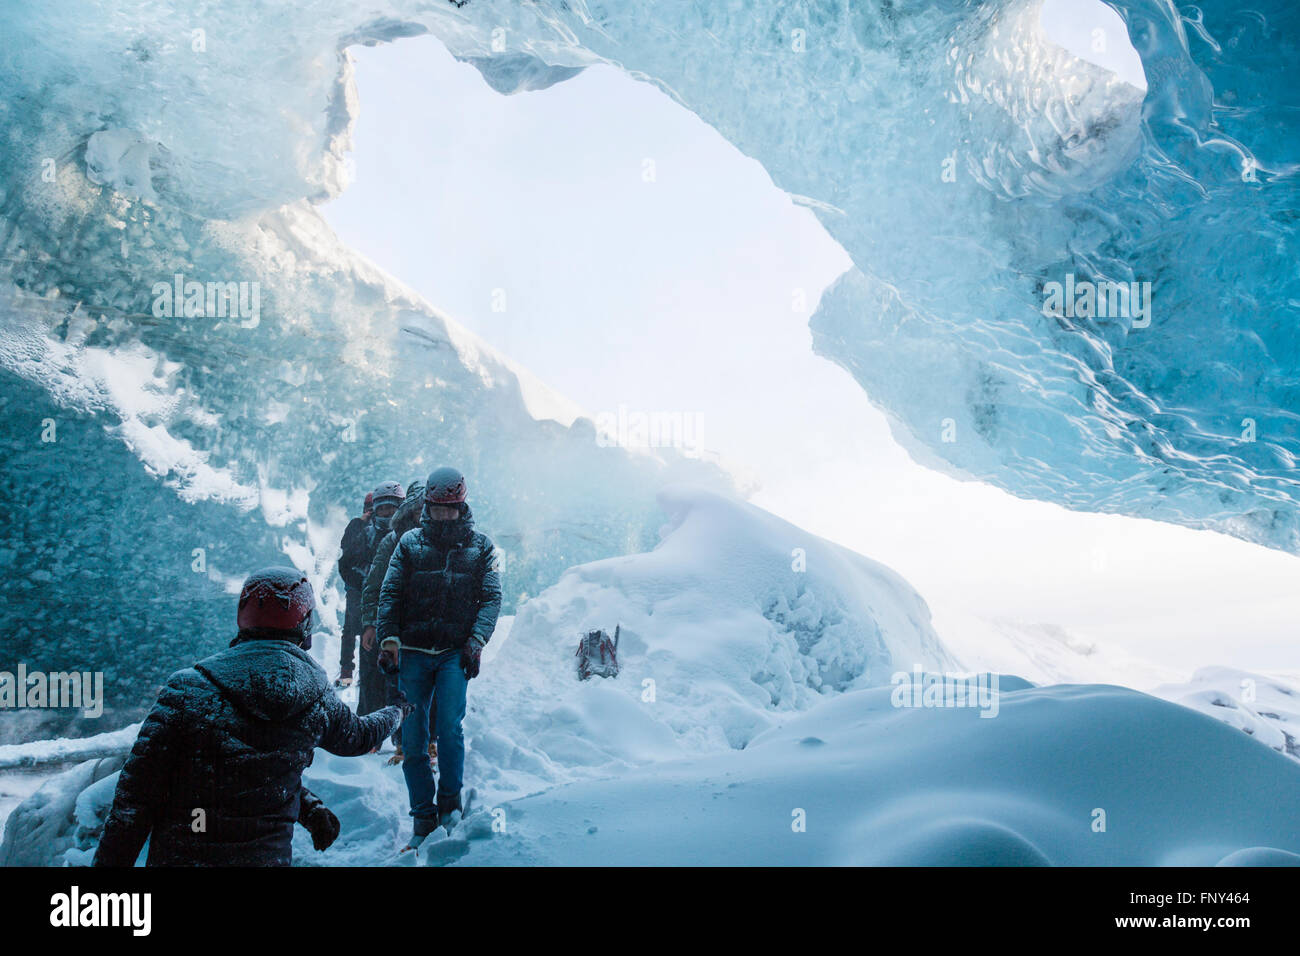 People at the entrance of an ice cave, Vatnajökull Nationalpark, Glacier, Iceland - Stock Image